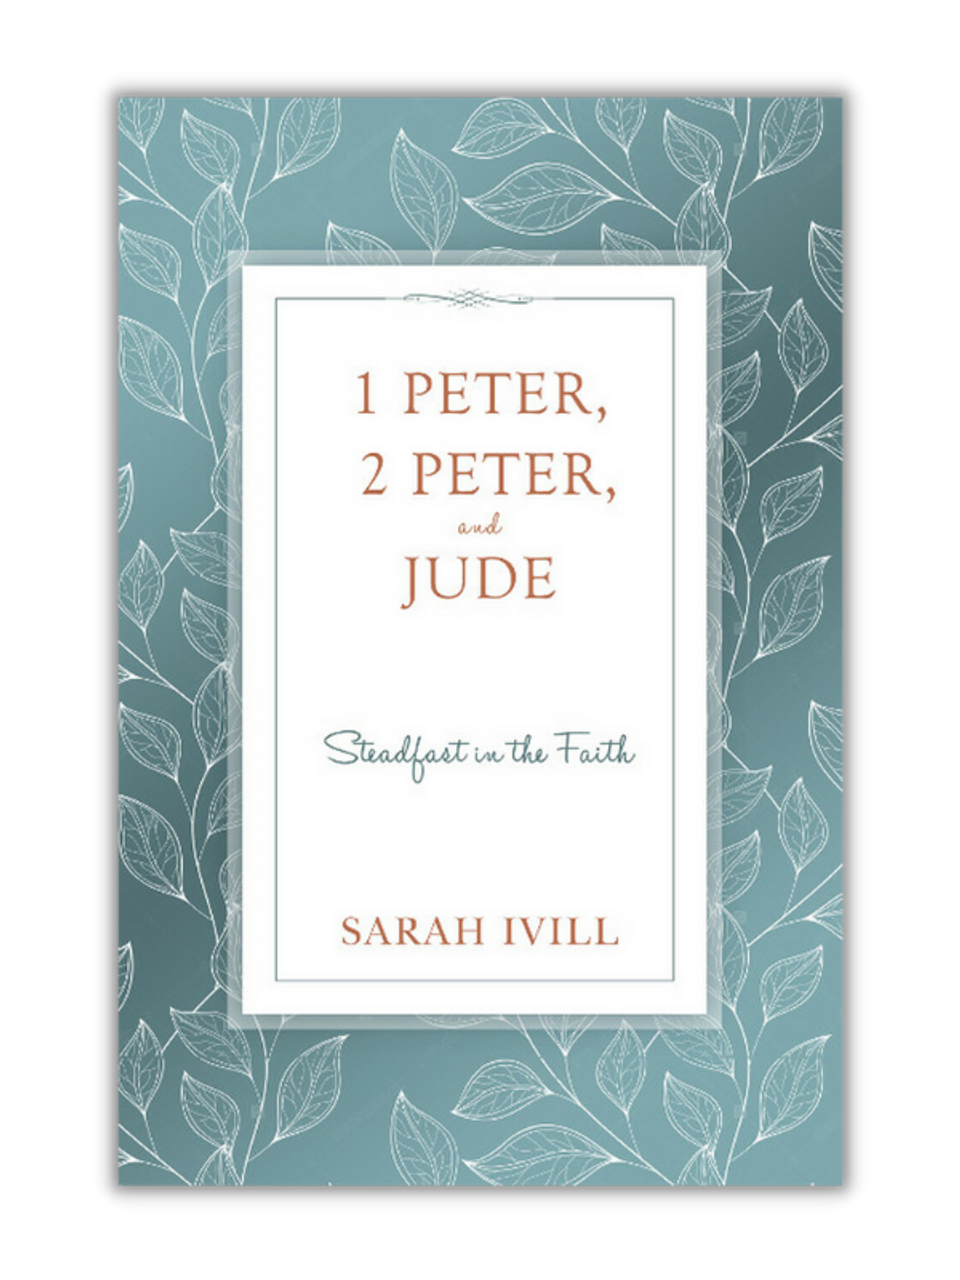 1 Peter, 2 Peter, and Jude: Steadfast in the Faith (Paperback)